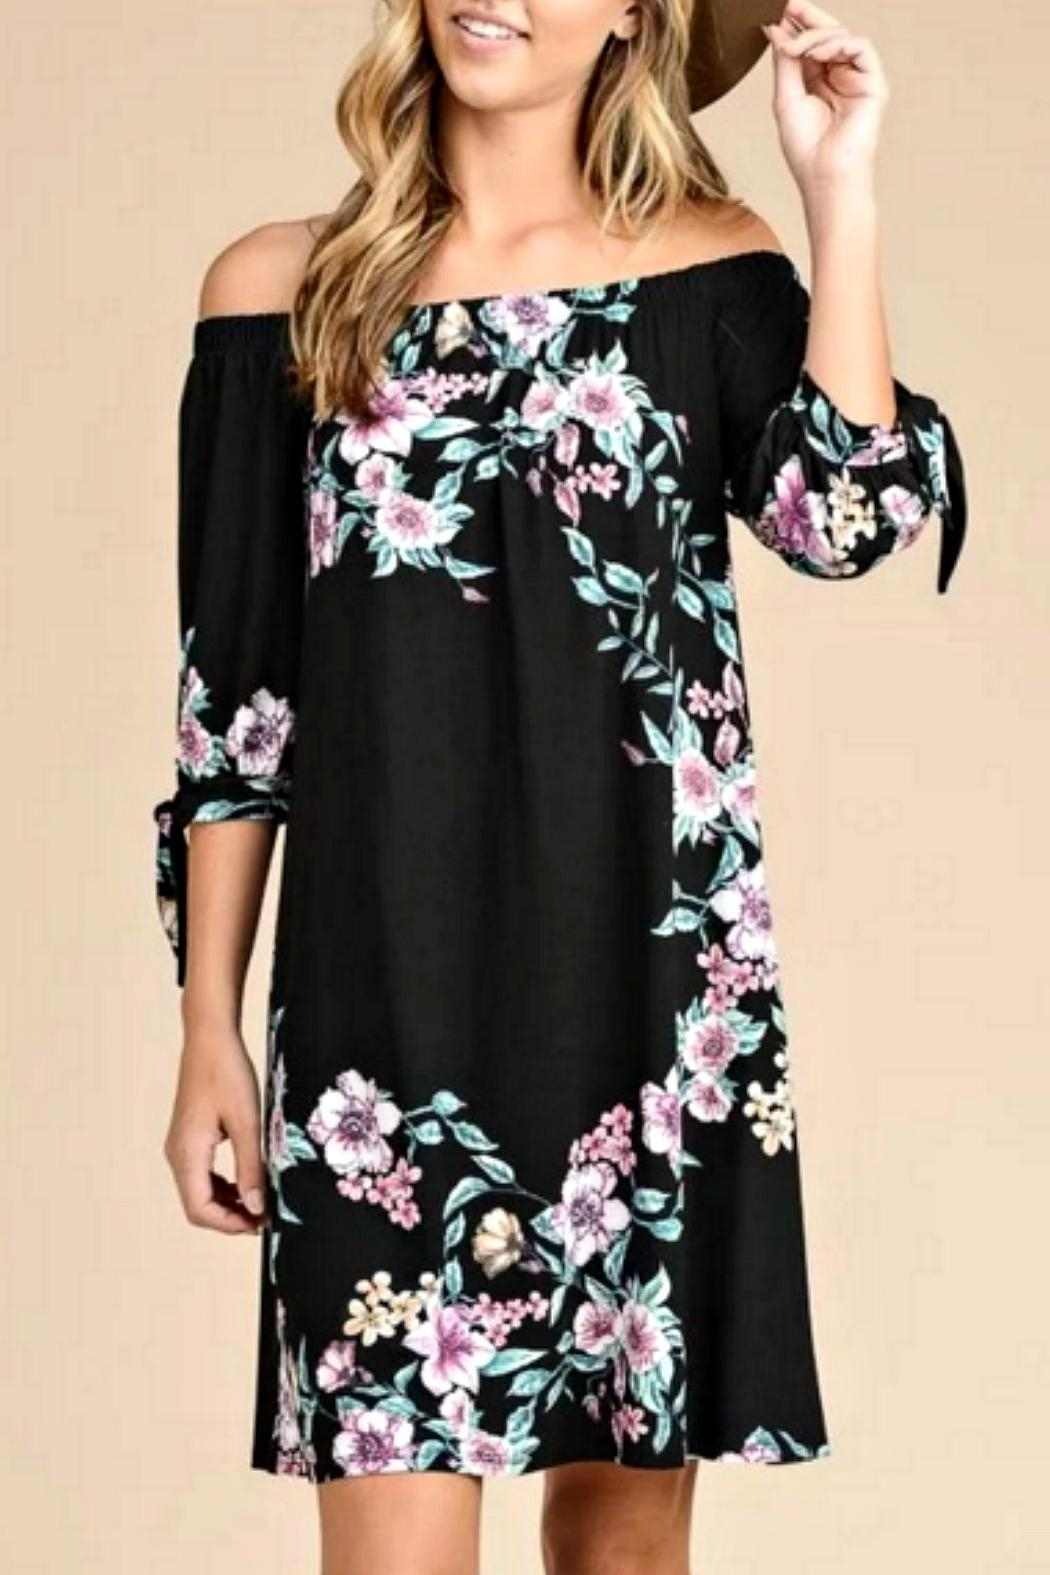 vanilla bay Black Floral Dress - Main Image